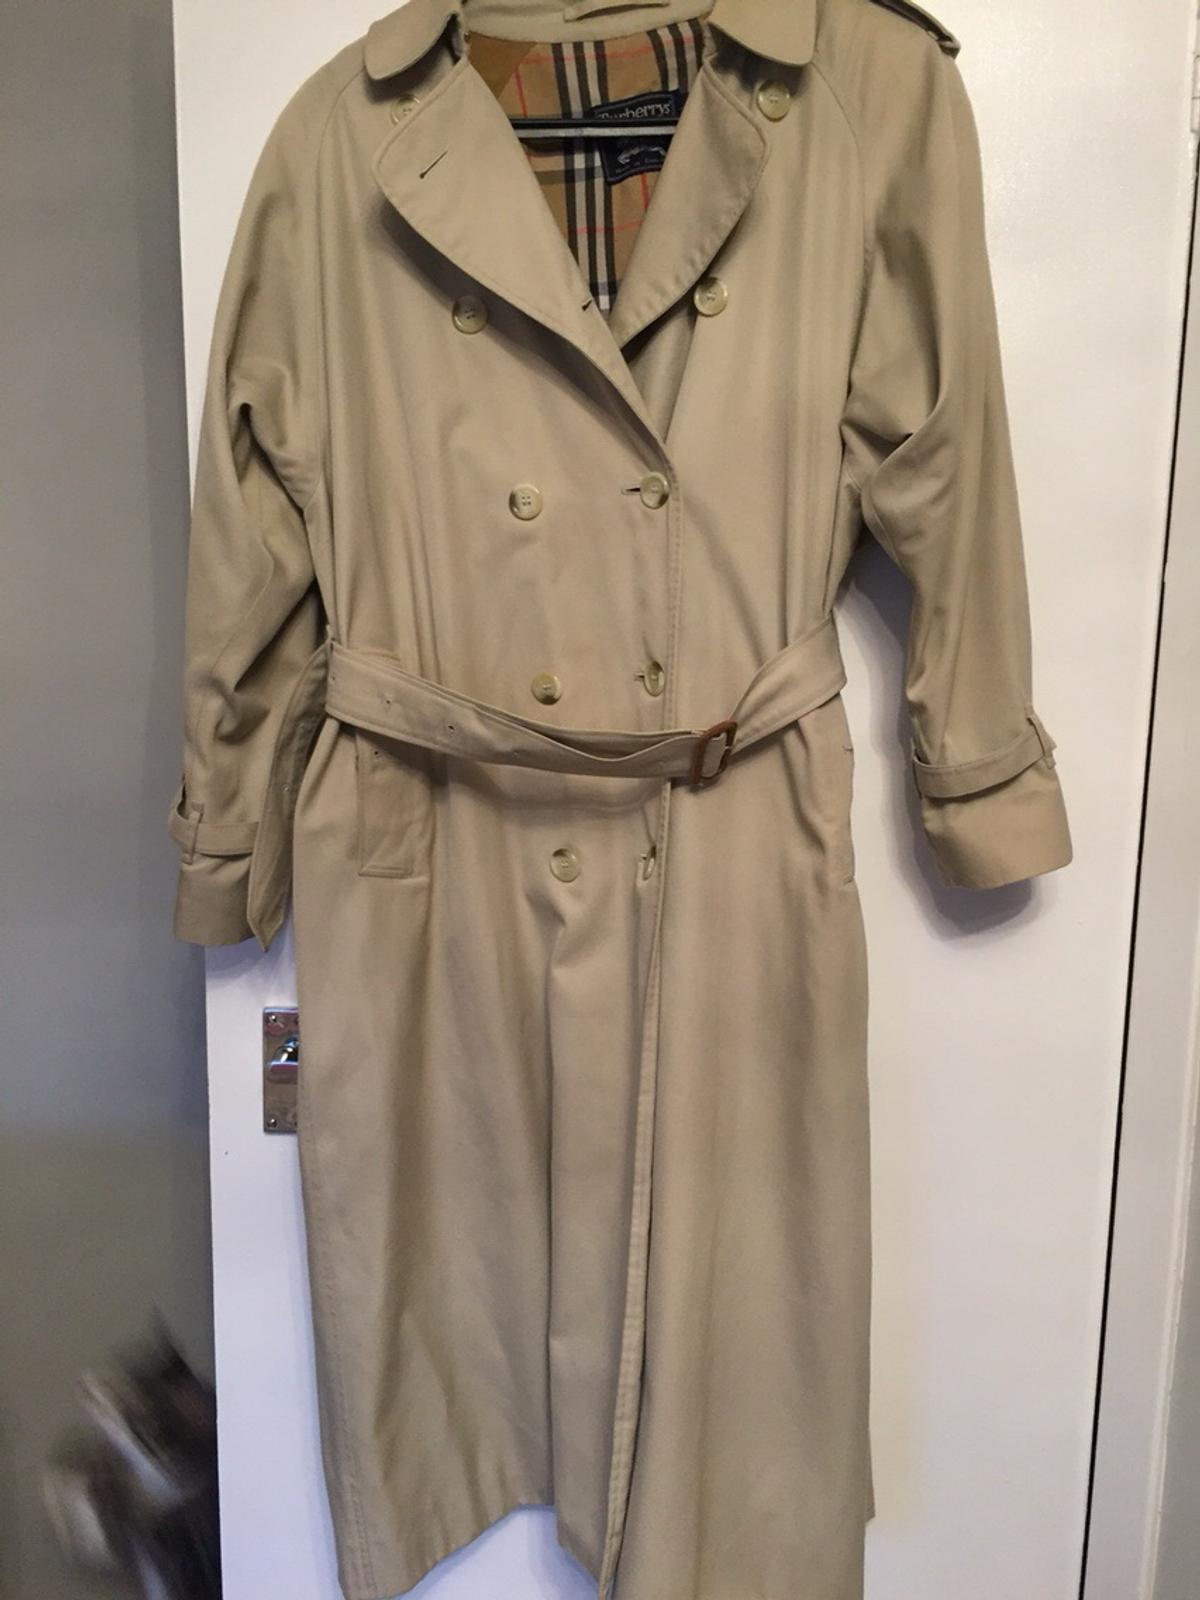 2a787fc90 Vintage Burberry Trench Coat in KA9 Prestwick for £30.00 for sale ...